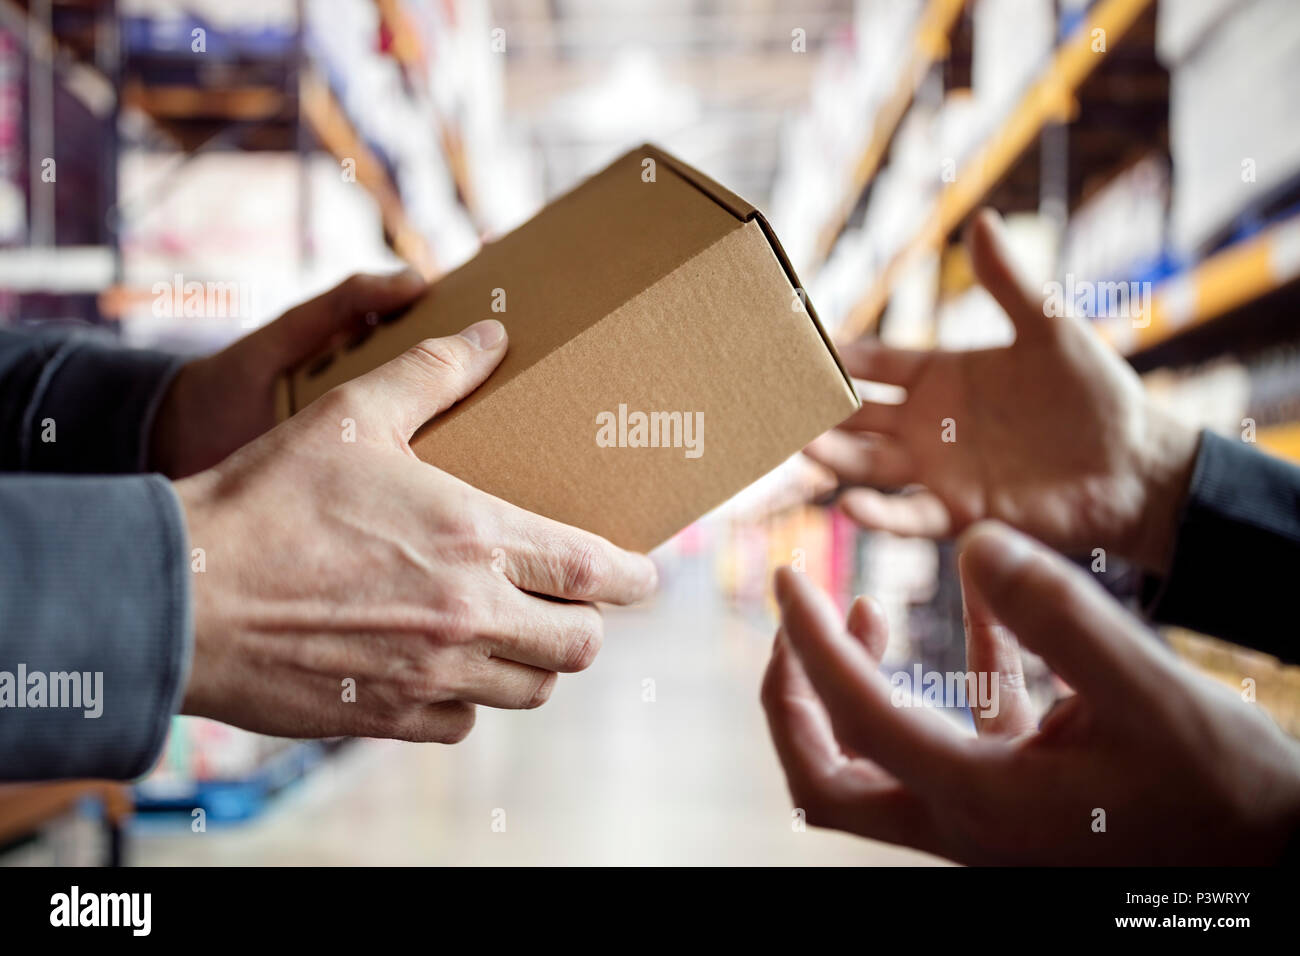 Worker giving a package in distribution warehouse - Stock Image